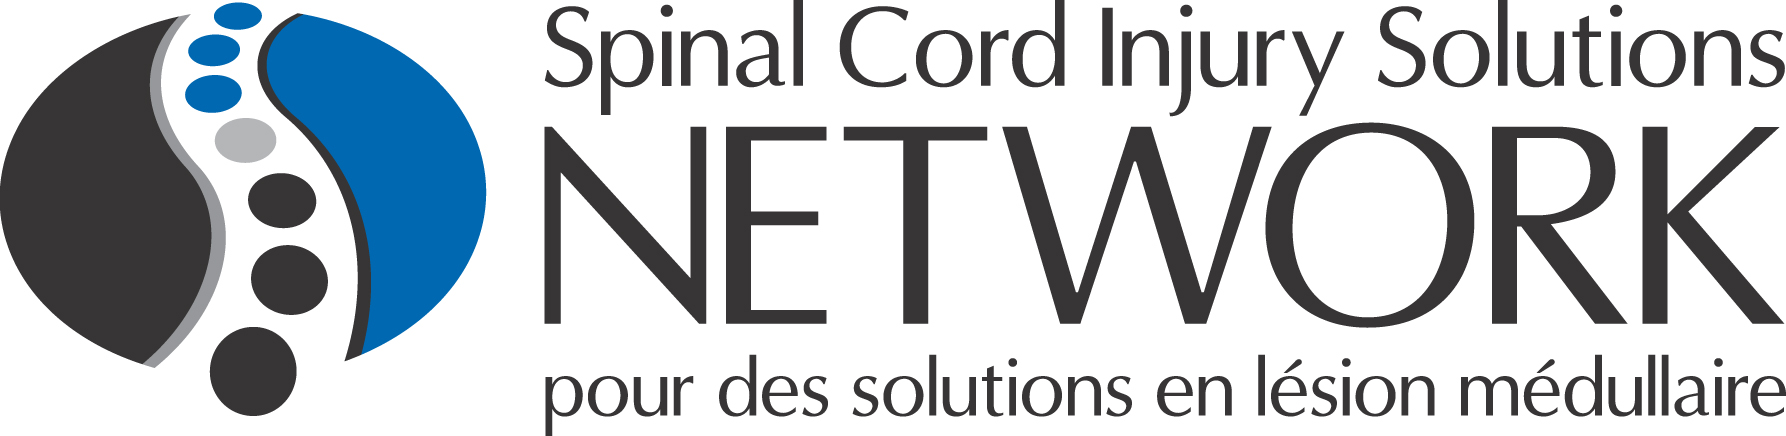 Spinal Cord Injury Solutions Network Logo